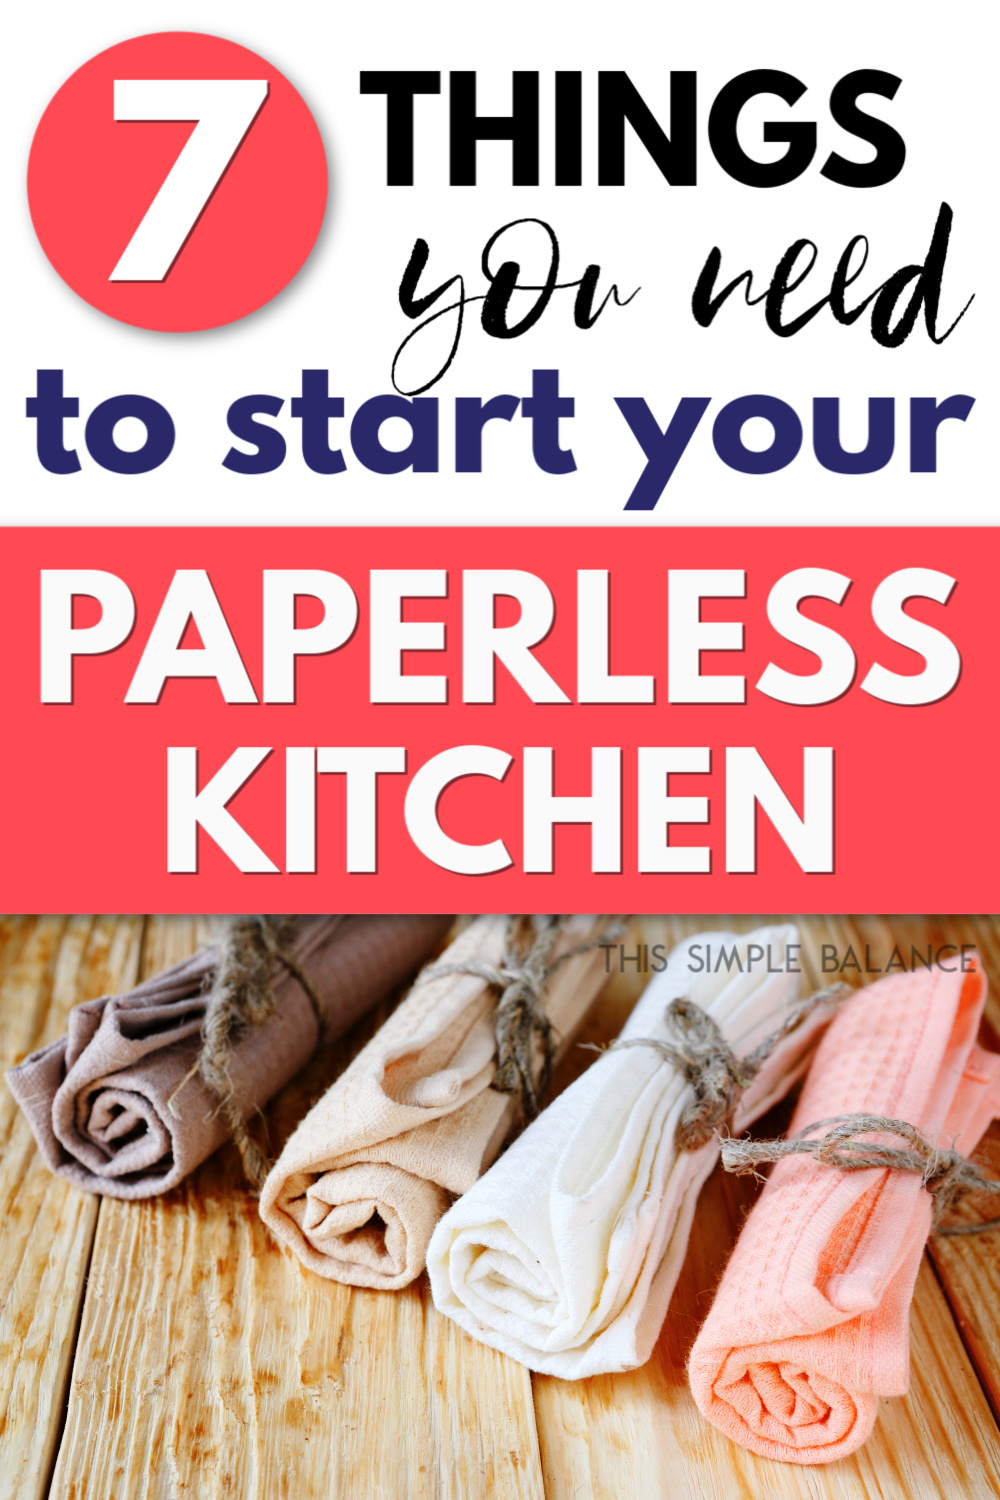 paperless kitchen dish towels